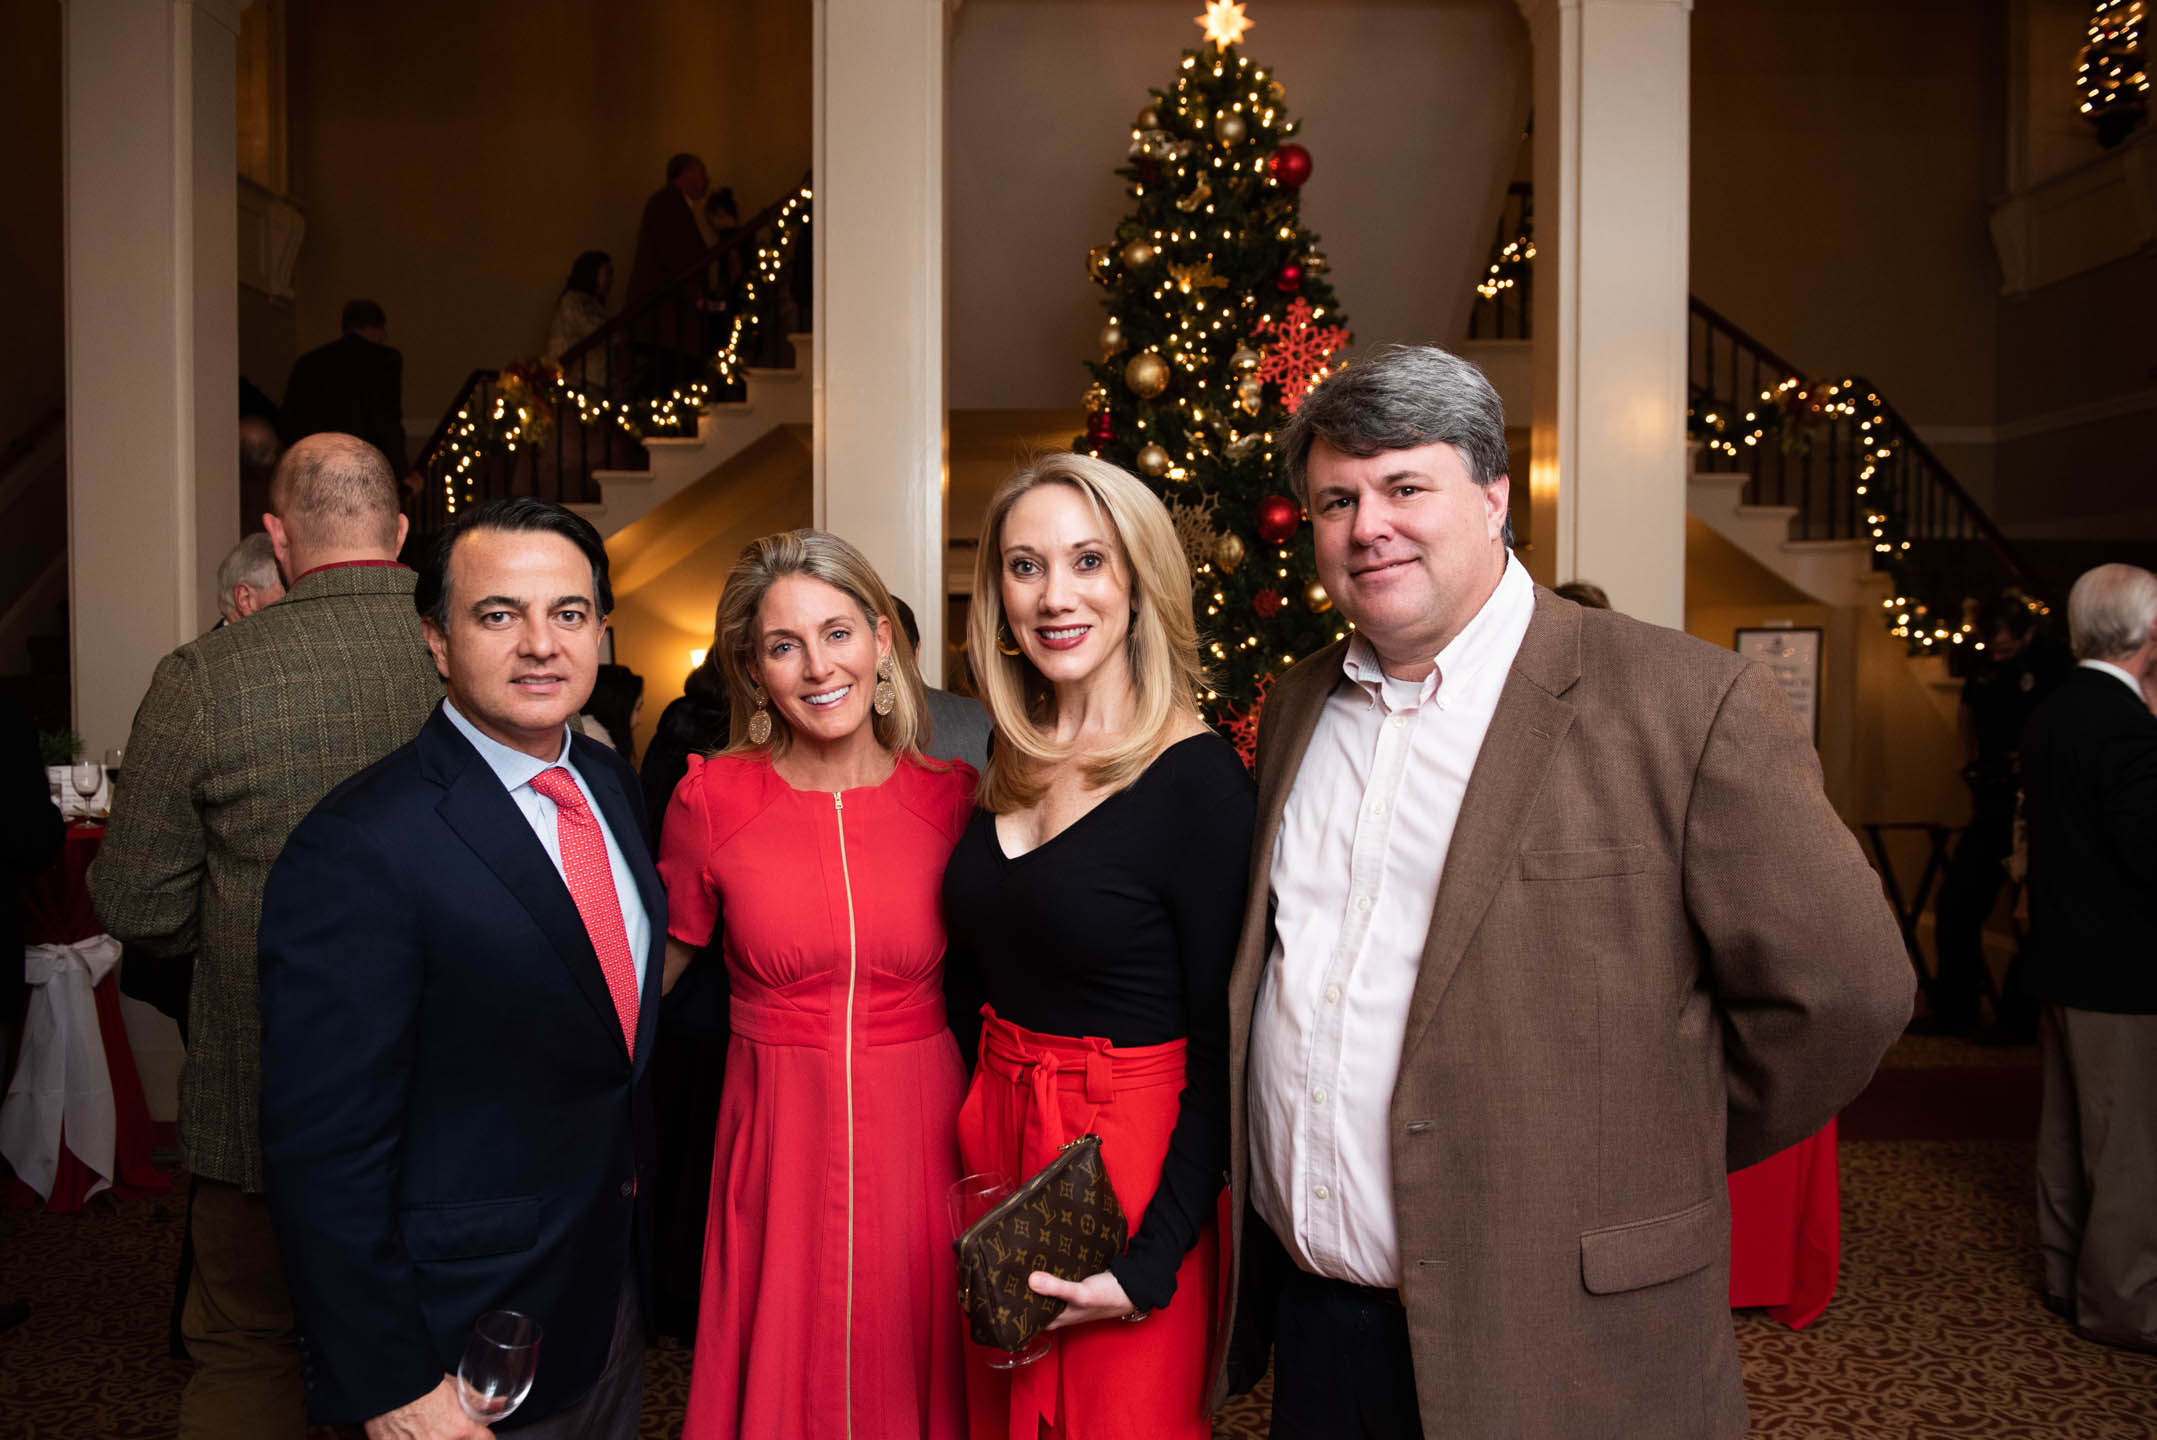 Charleston Event Photography: Charleston Stage Director's Circle for A Christmas Carol